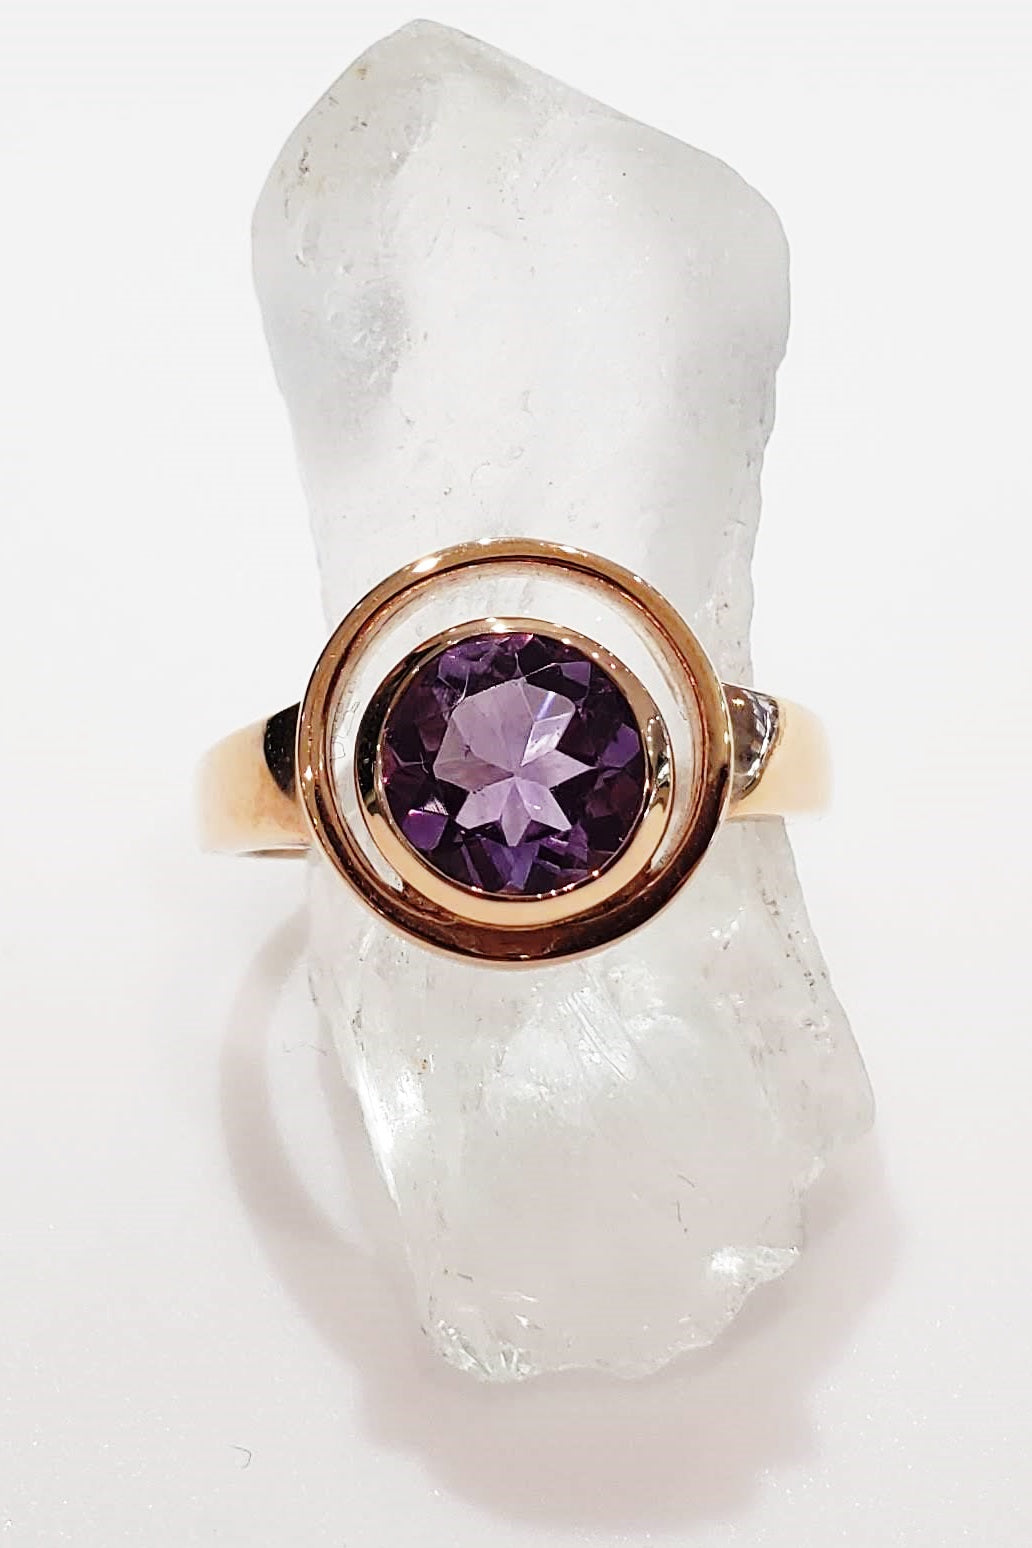 orbit ring in rose gold-filled sterling silver and purple amethyst